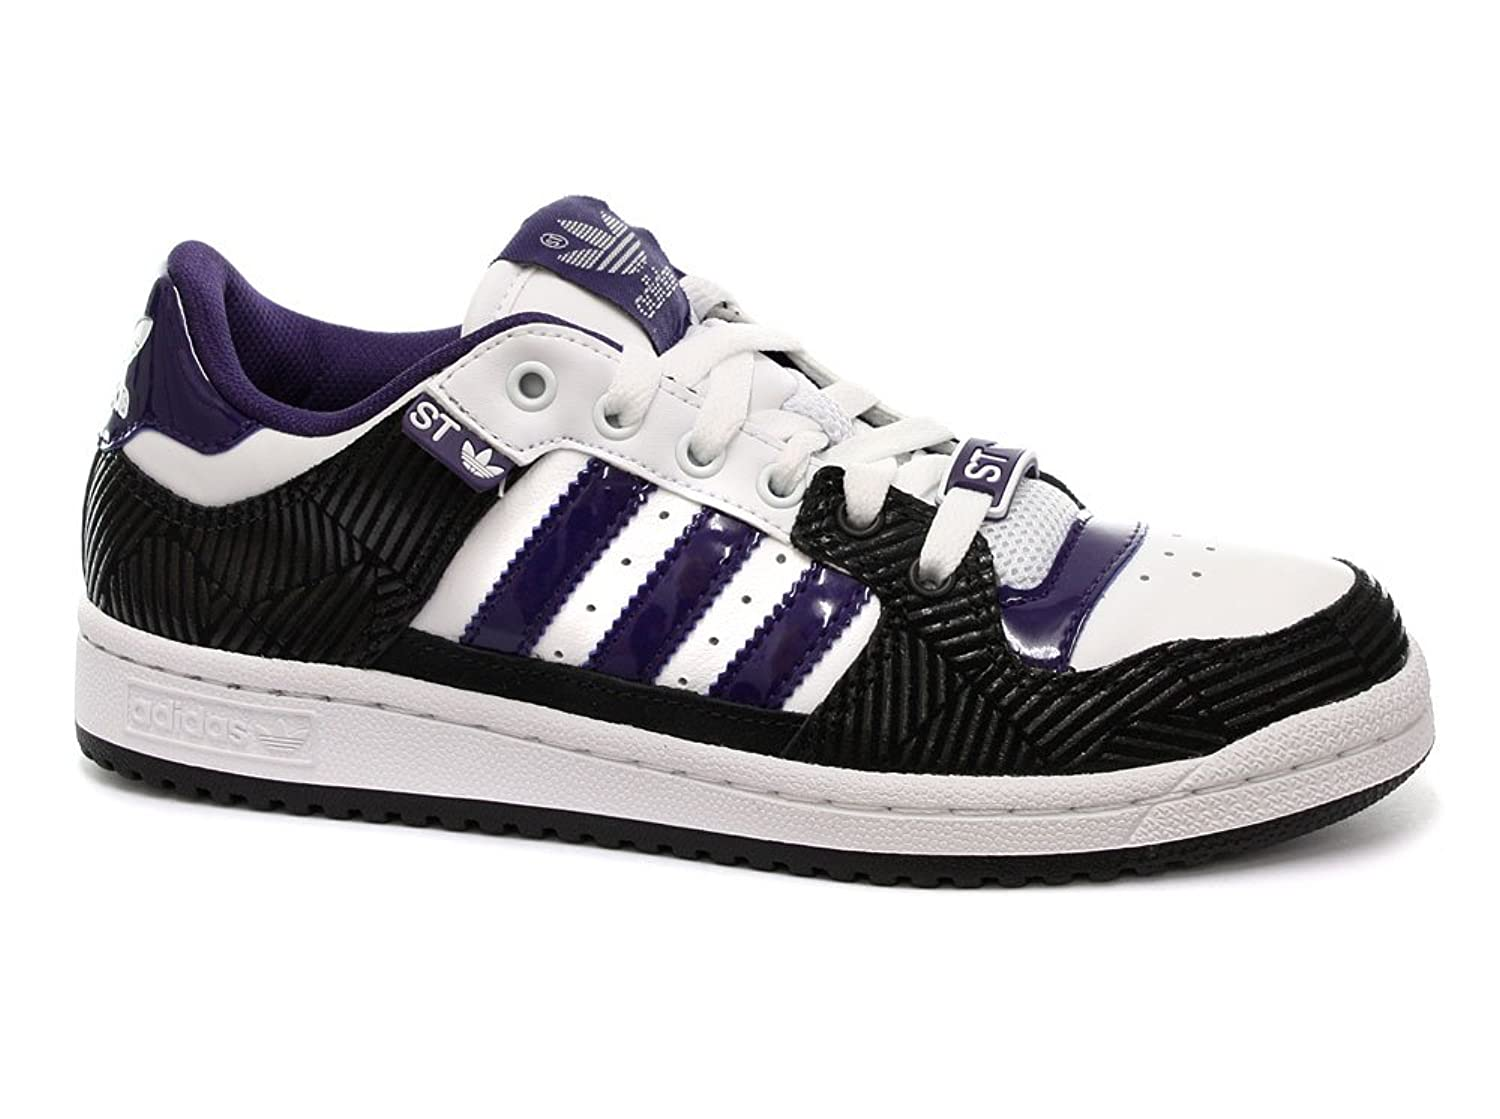 Adidas Originals Decade Low St Womens Sneakers hot sale 2017